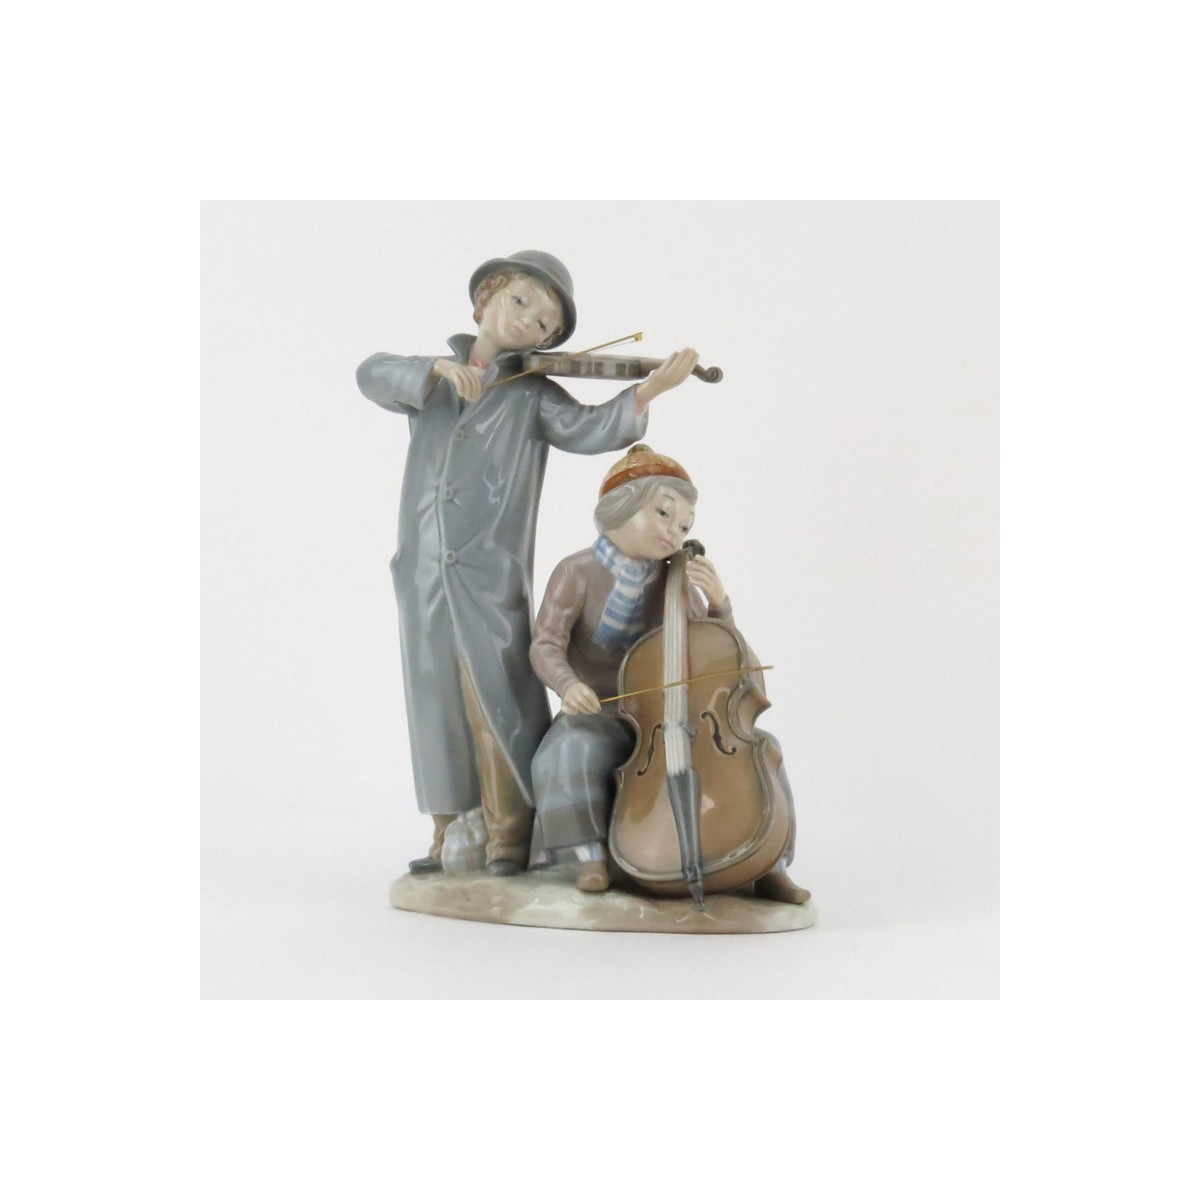 Zaphir Lladro Style Young Musicians Porcelain Grouping. Signed and artist signed Jose Puche, marked